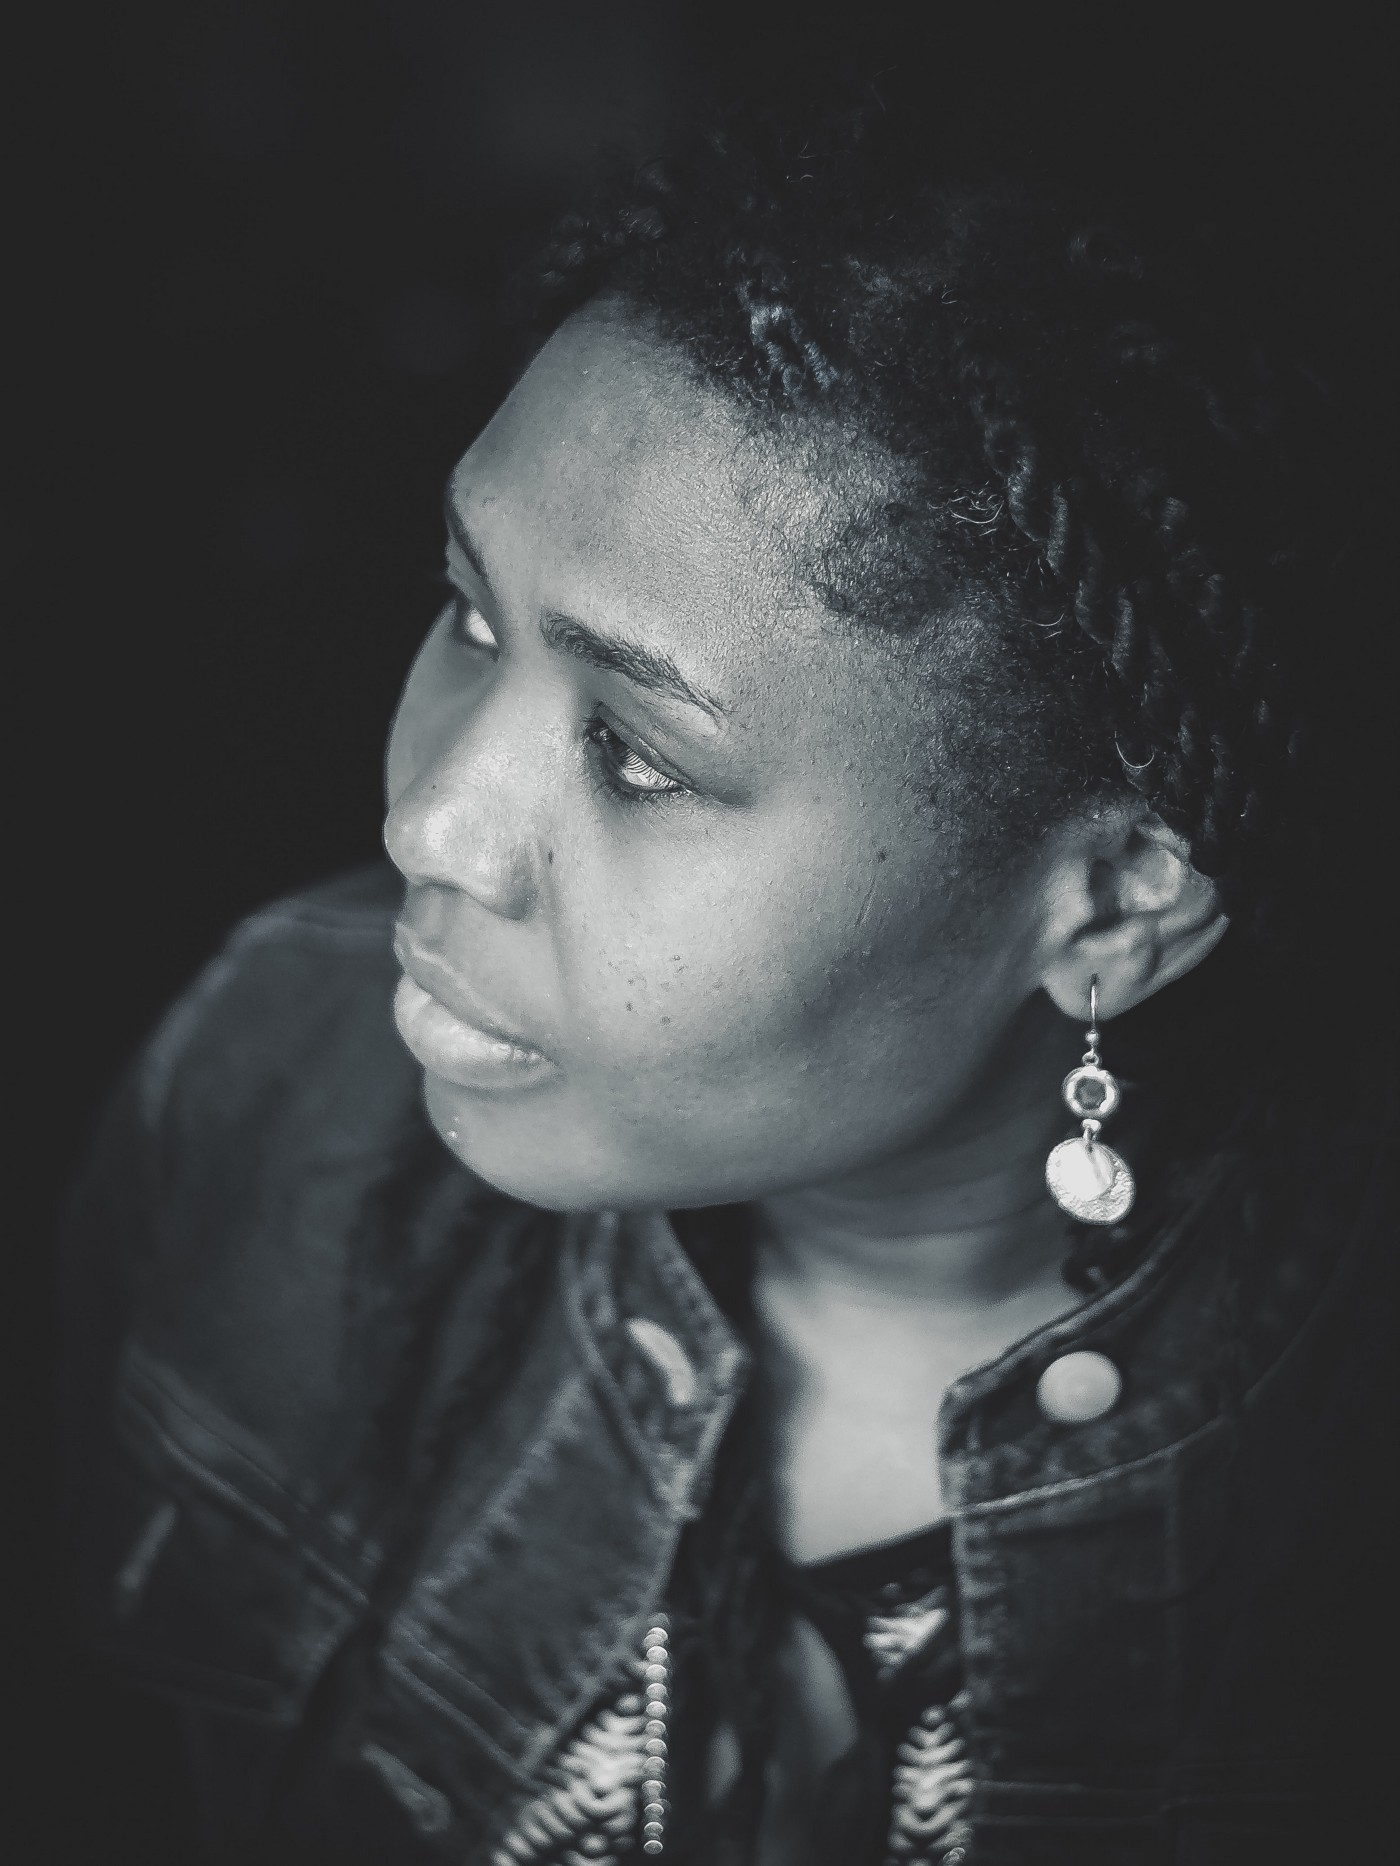 A side profile of an African woman wearing earrings and staring off into the distance in a dignified way.